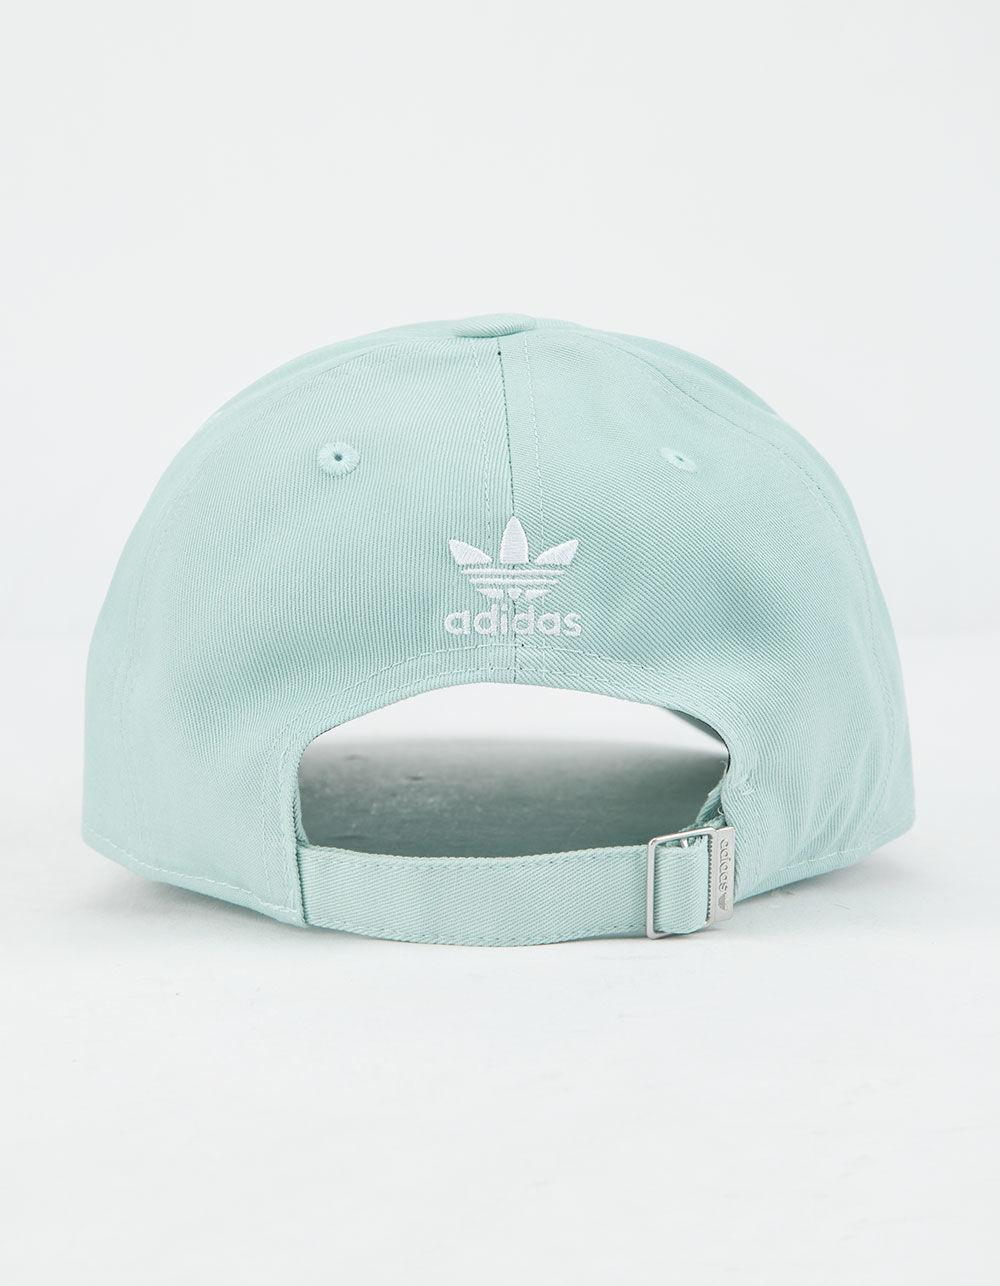 911902e2a85 Lyst - adidas Originals Relaxed Outline Ash Green Womens Strapback Hat in  Green - Save 53%